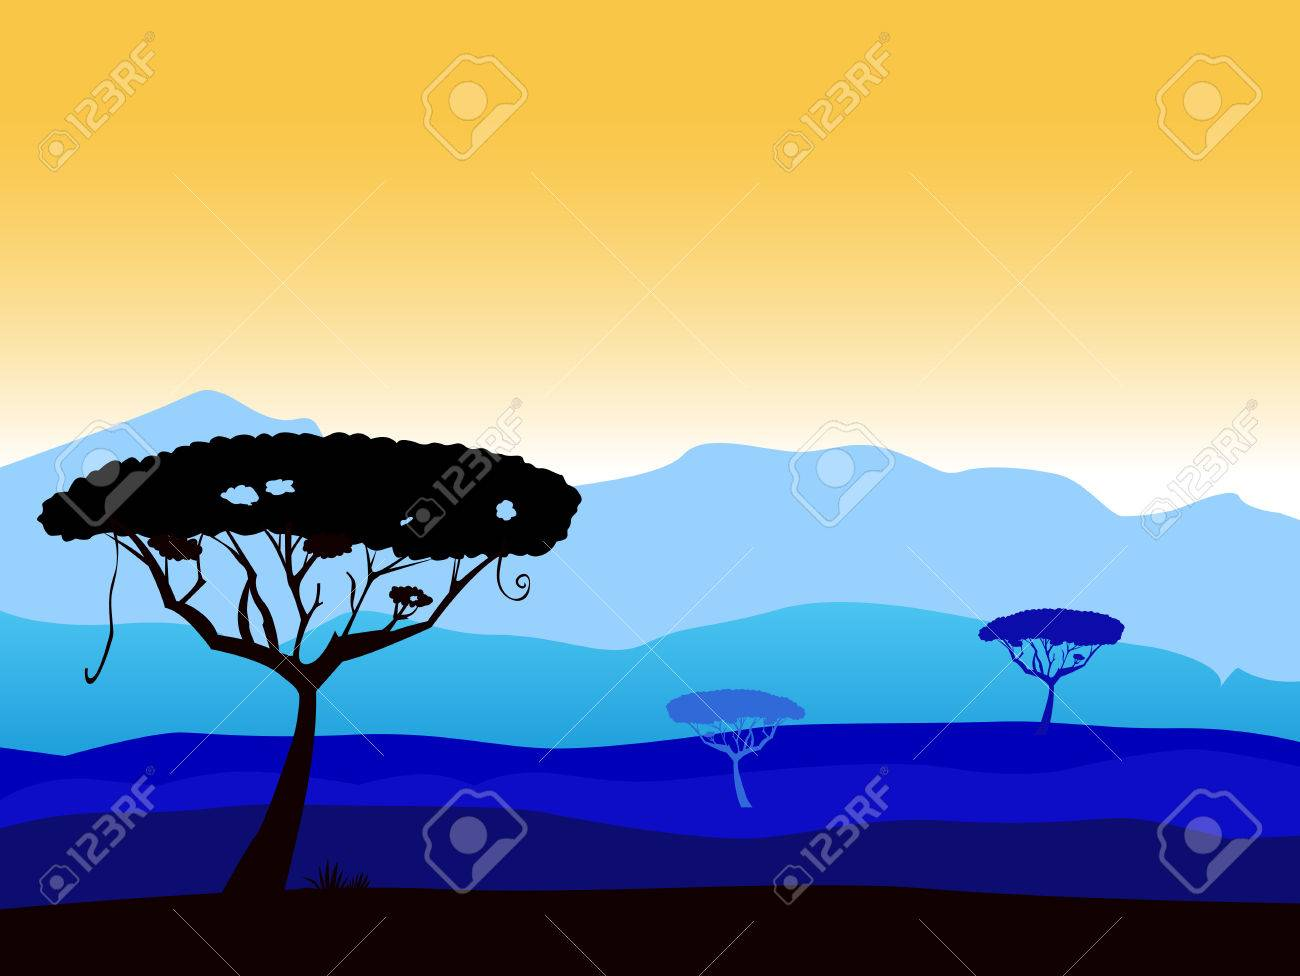 African safari background with tree silhouette. Vector background with dark acacia trees silhouette. High dark blue mountains in background. Stock Vector - 7095431